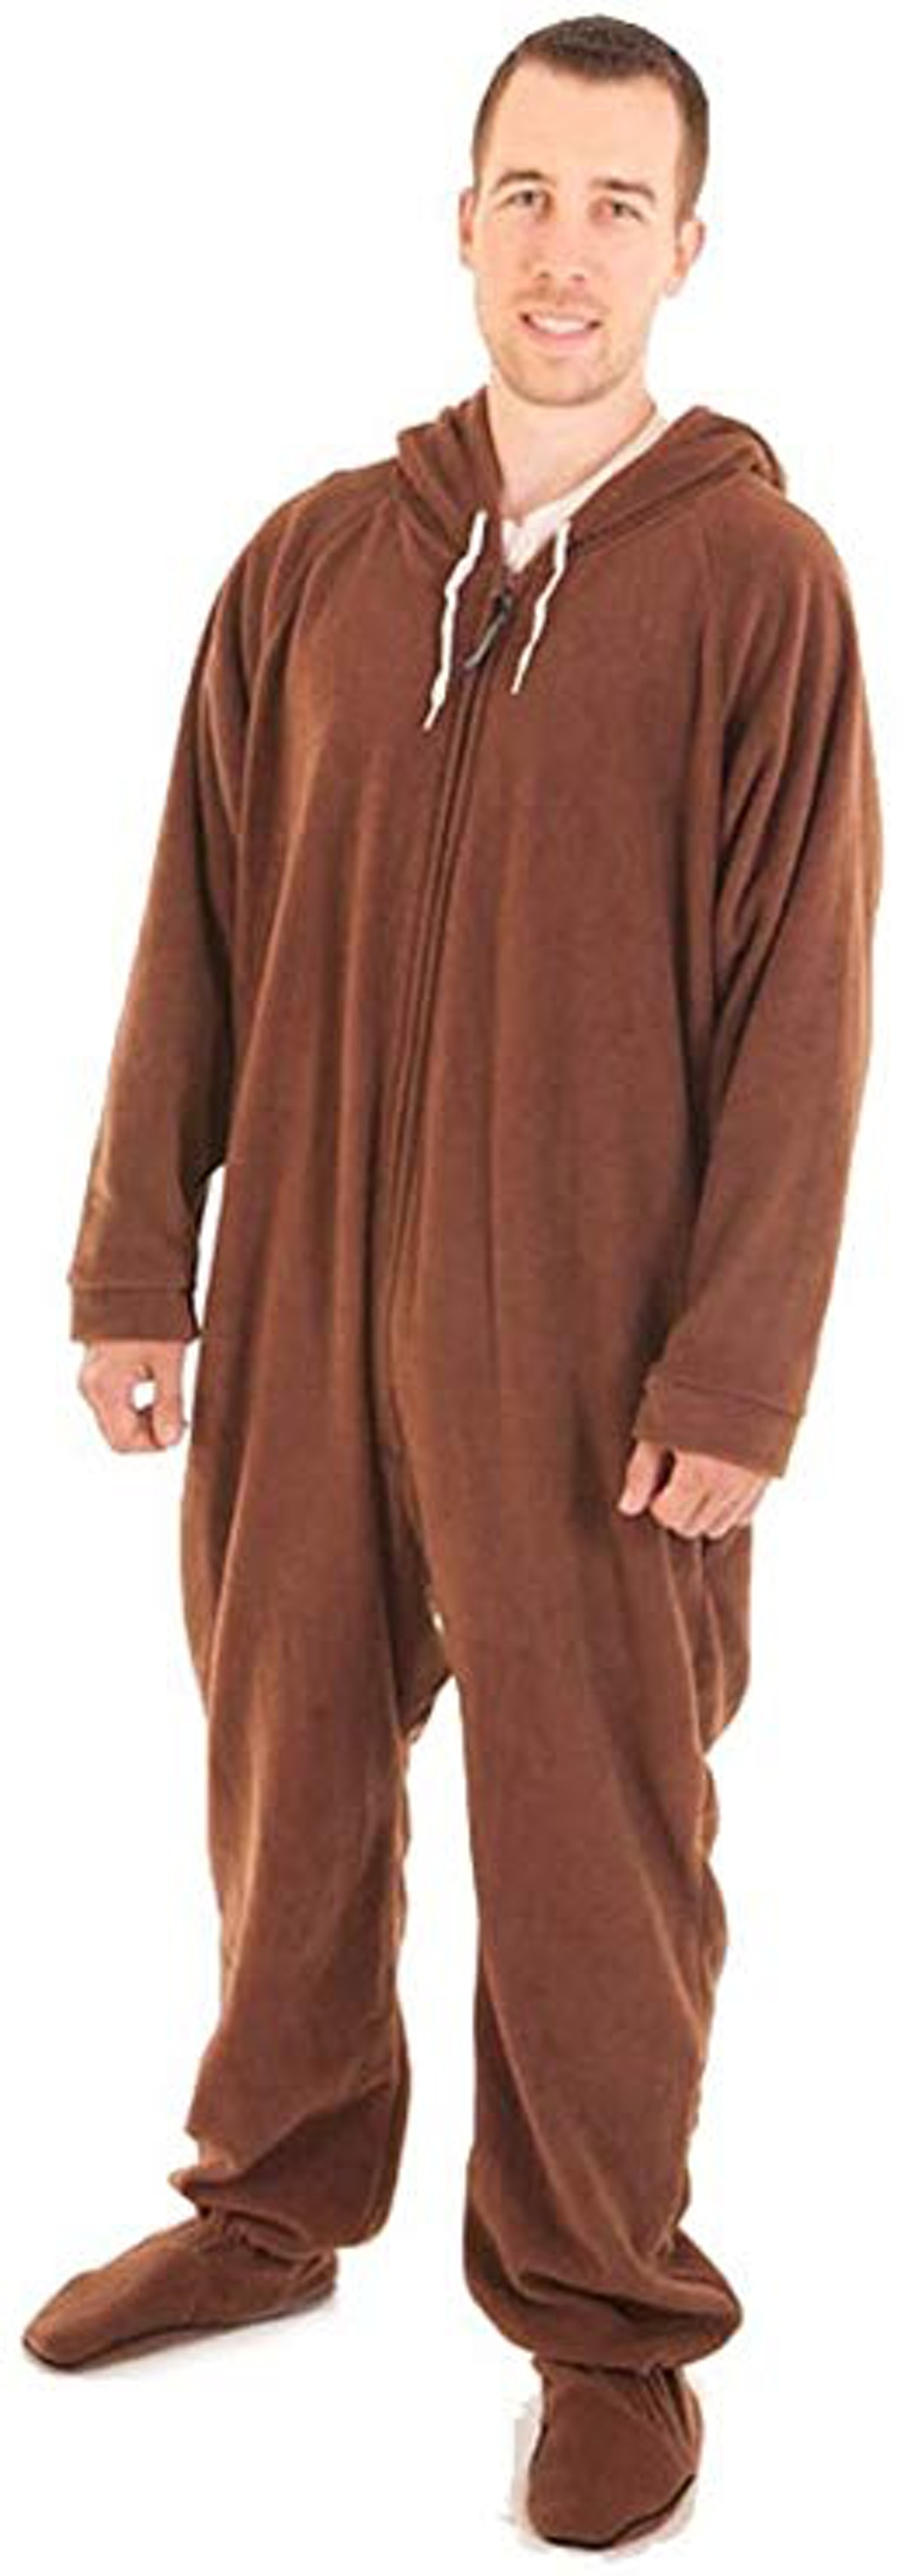 Forever Lazy Footed Adult Onesies